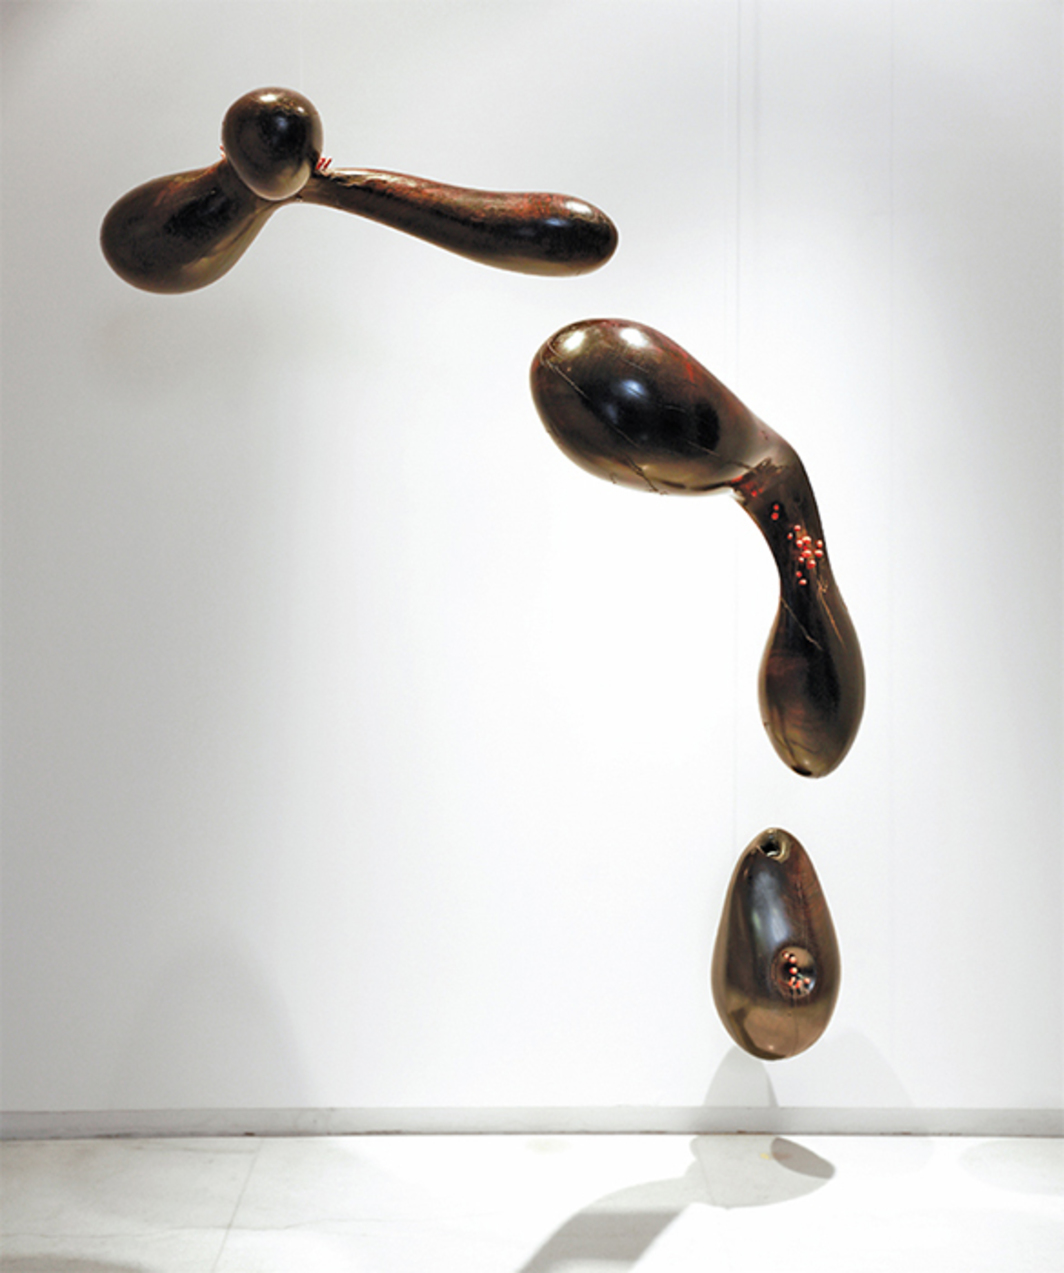 "Ranjani Shettar, Remanence from last night's dream, 2011–16, rosewood, lacquered wood, pigments, 72 × 50 × 35""."